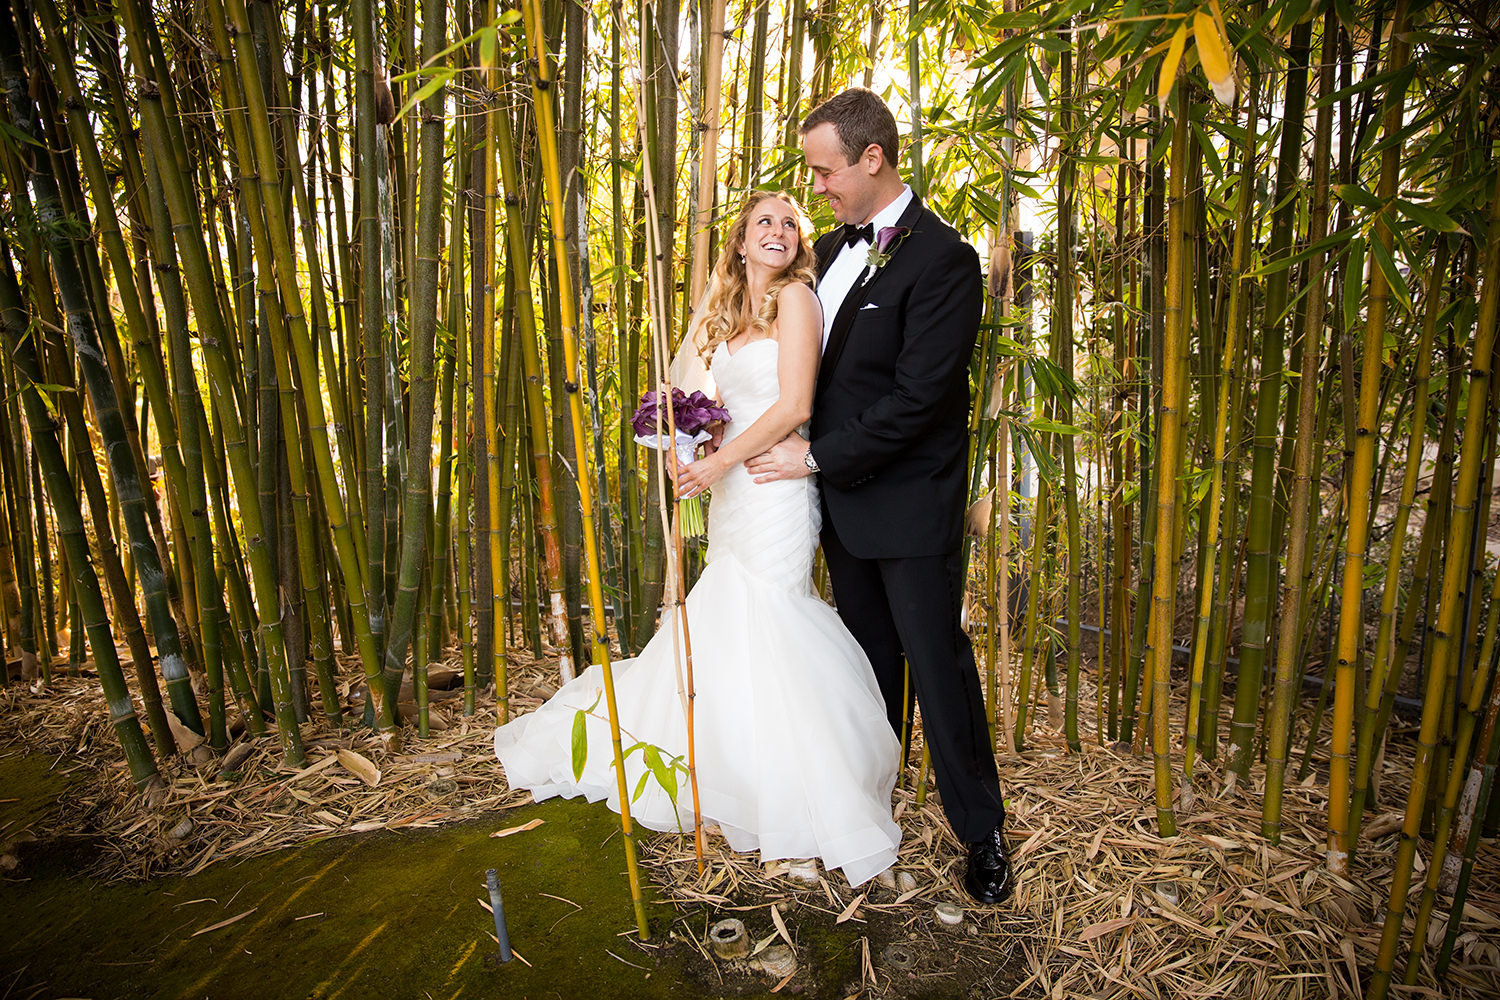 bride and groom in the bamboo